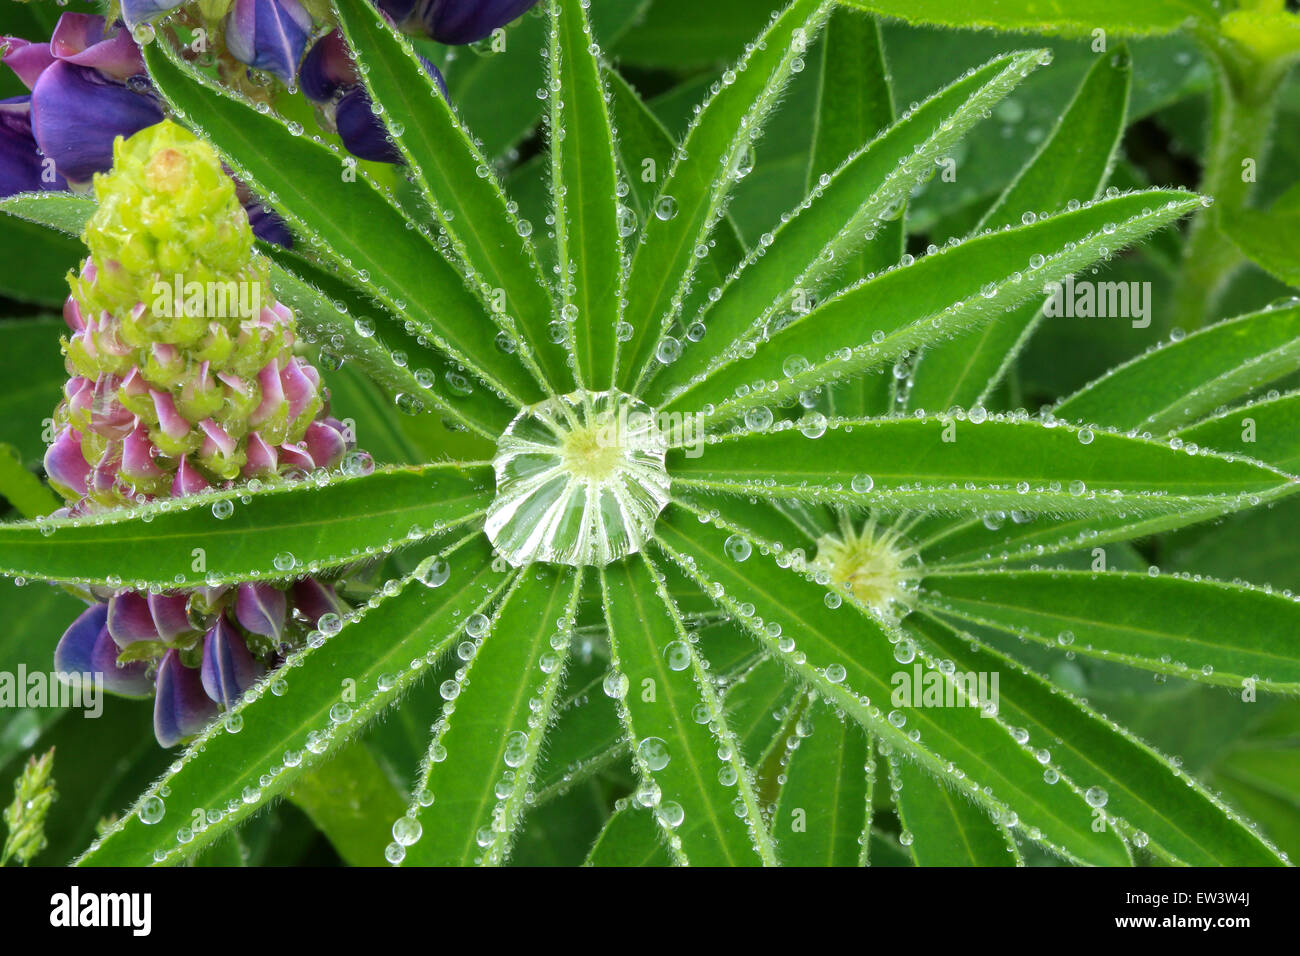 Dew drops on green leaves. Lupine flowers and leaves. Background. - Stock Image